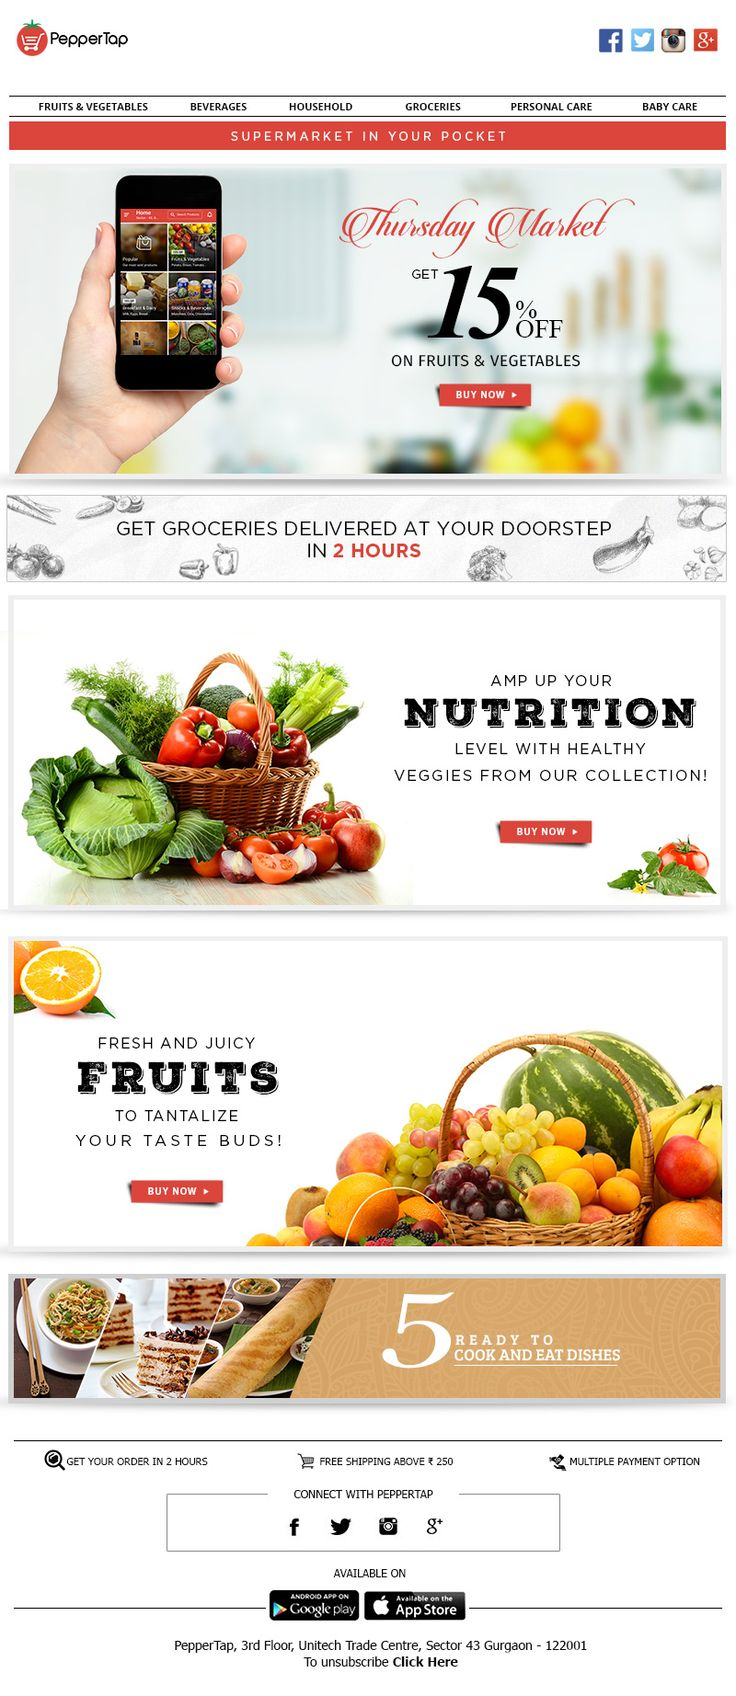 #Thrusday Market #SALE #Emaildesign #Newsletterlayout #emailer #emailnewsletter #email  Get in touch at http://www.grapessoftware.com/enquiry/